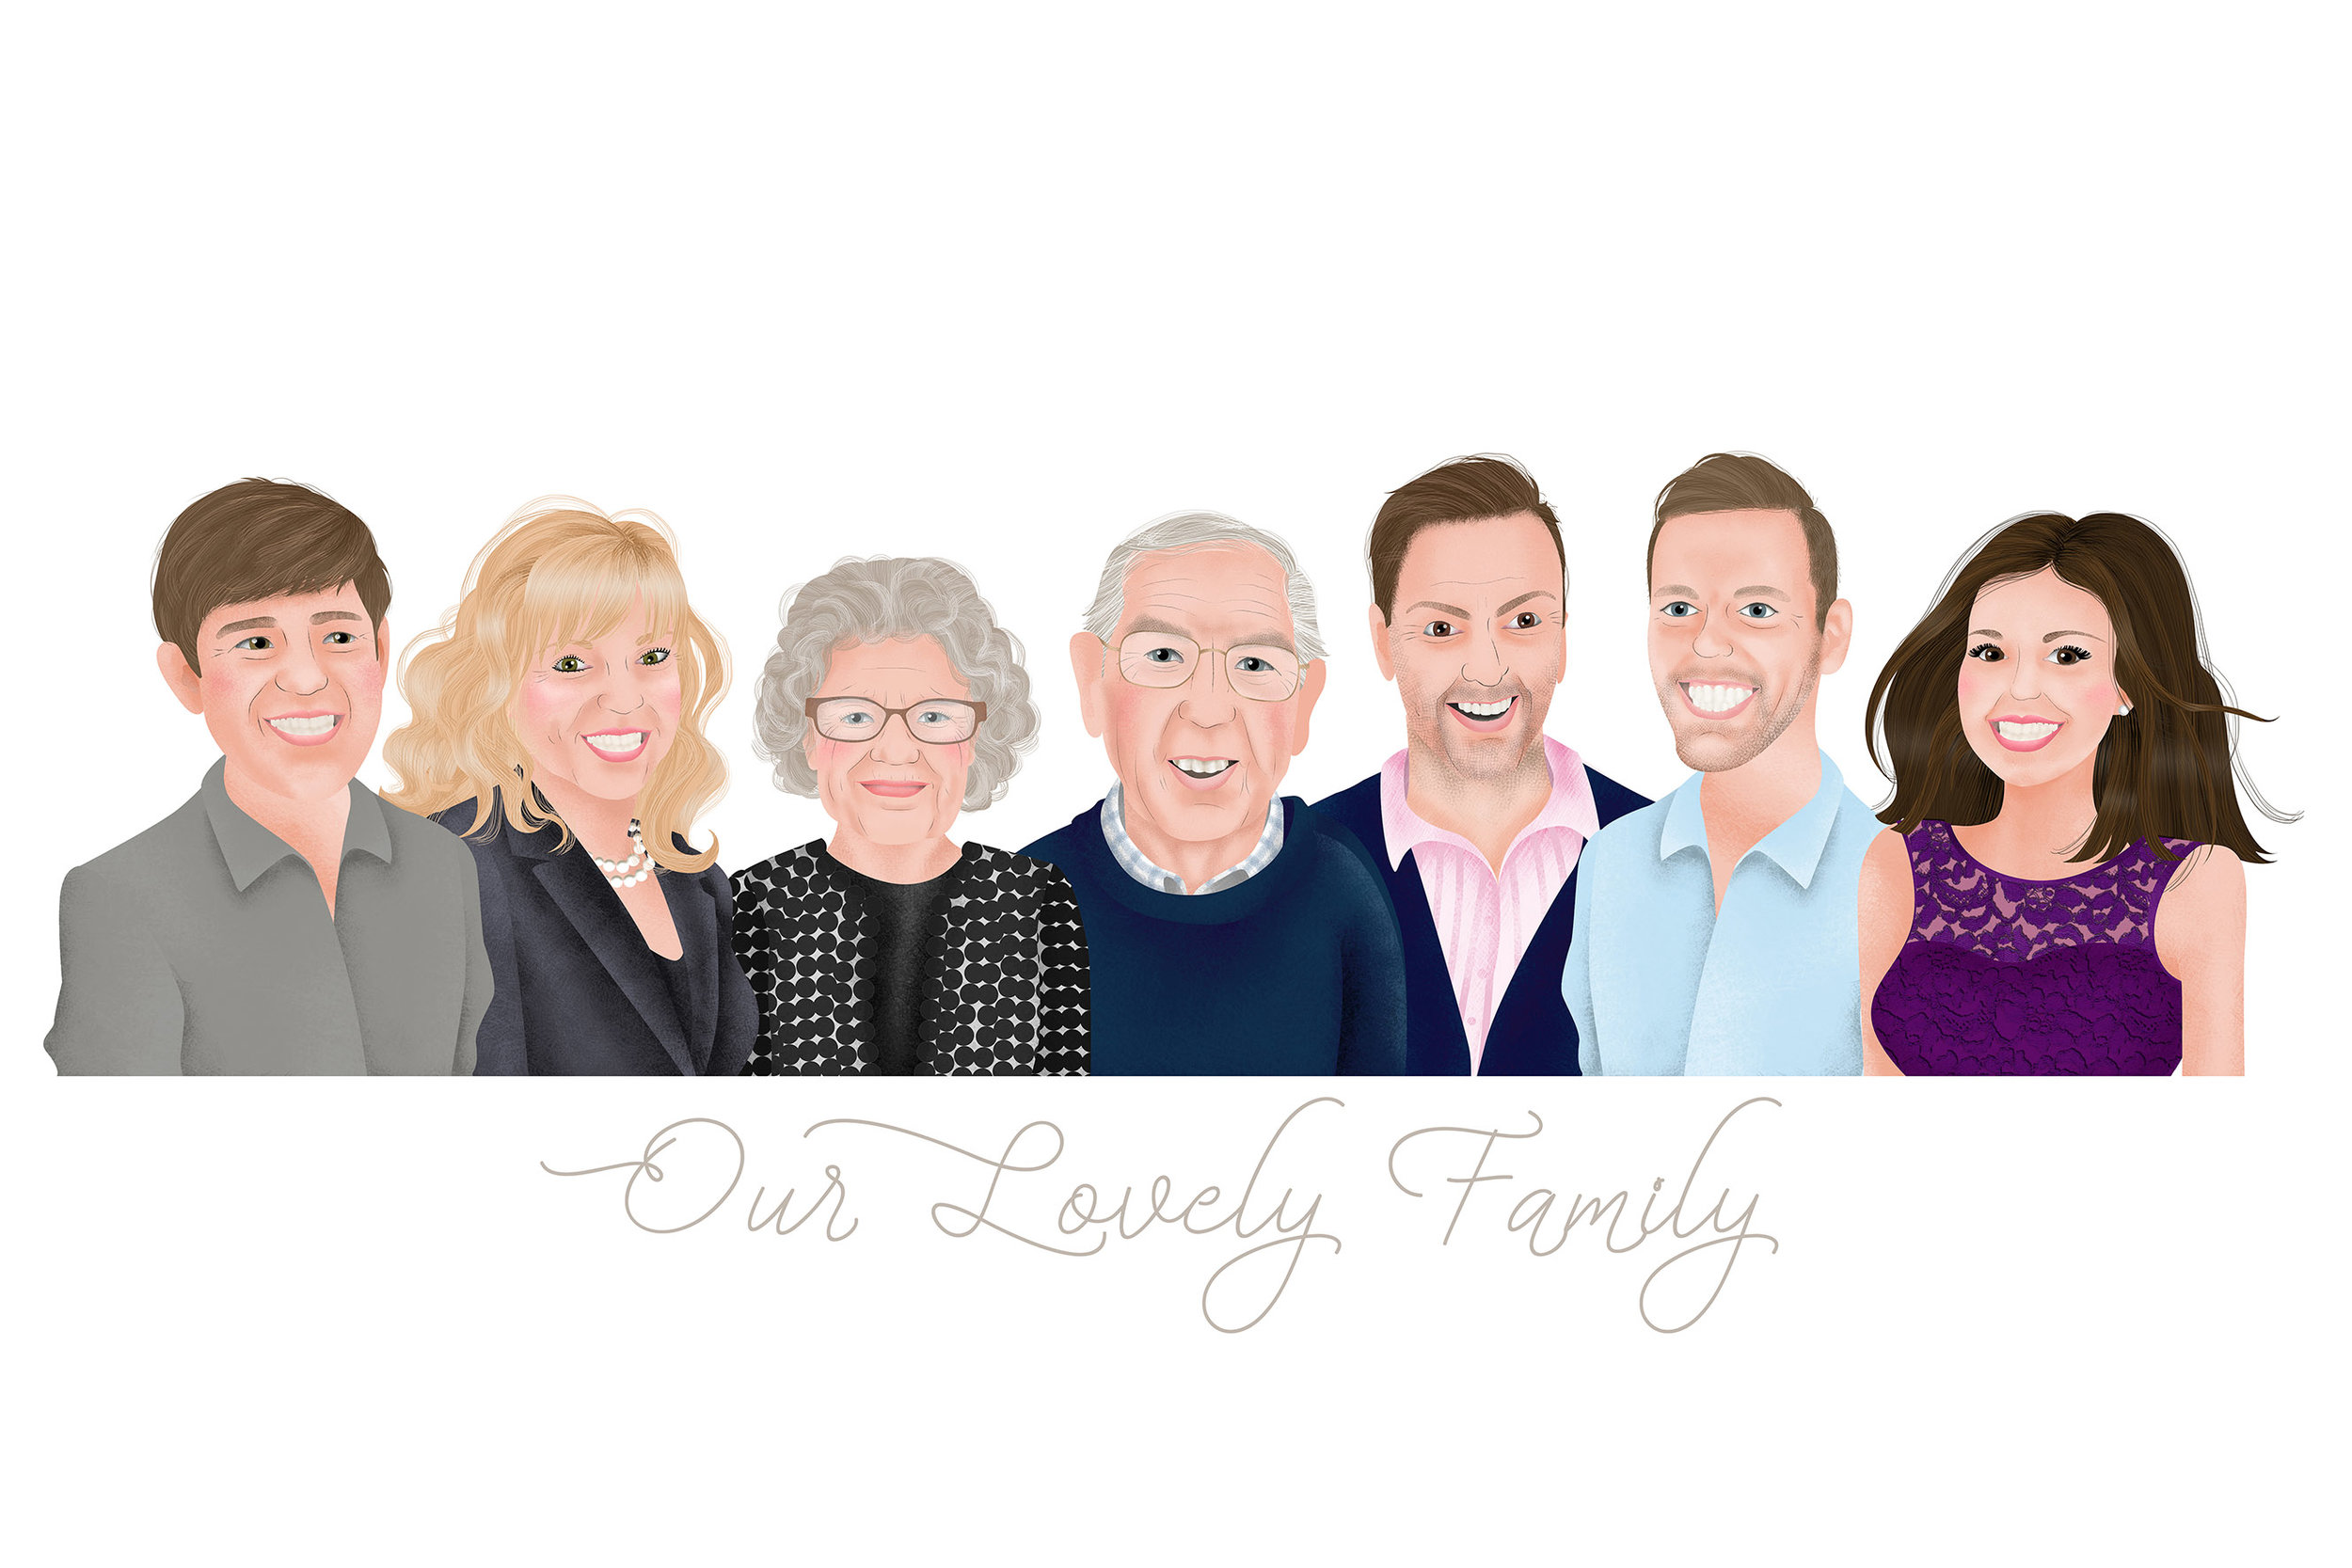 Becky-Poole-Family-Portrait- 24inch x 16inch size.jpg